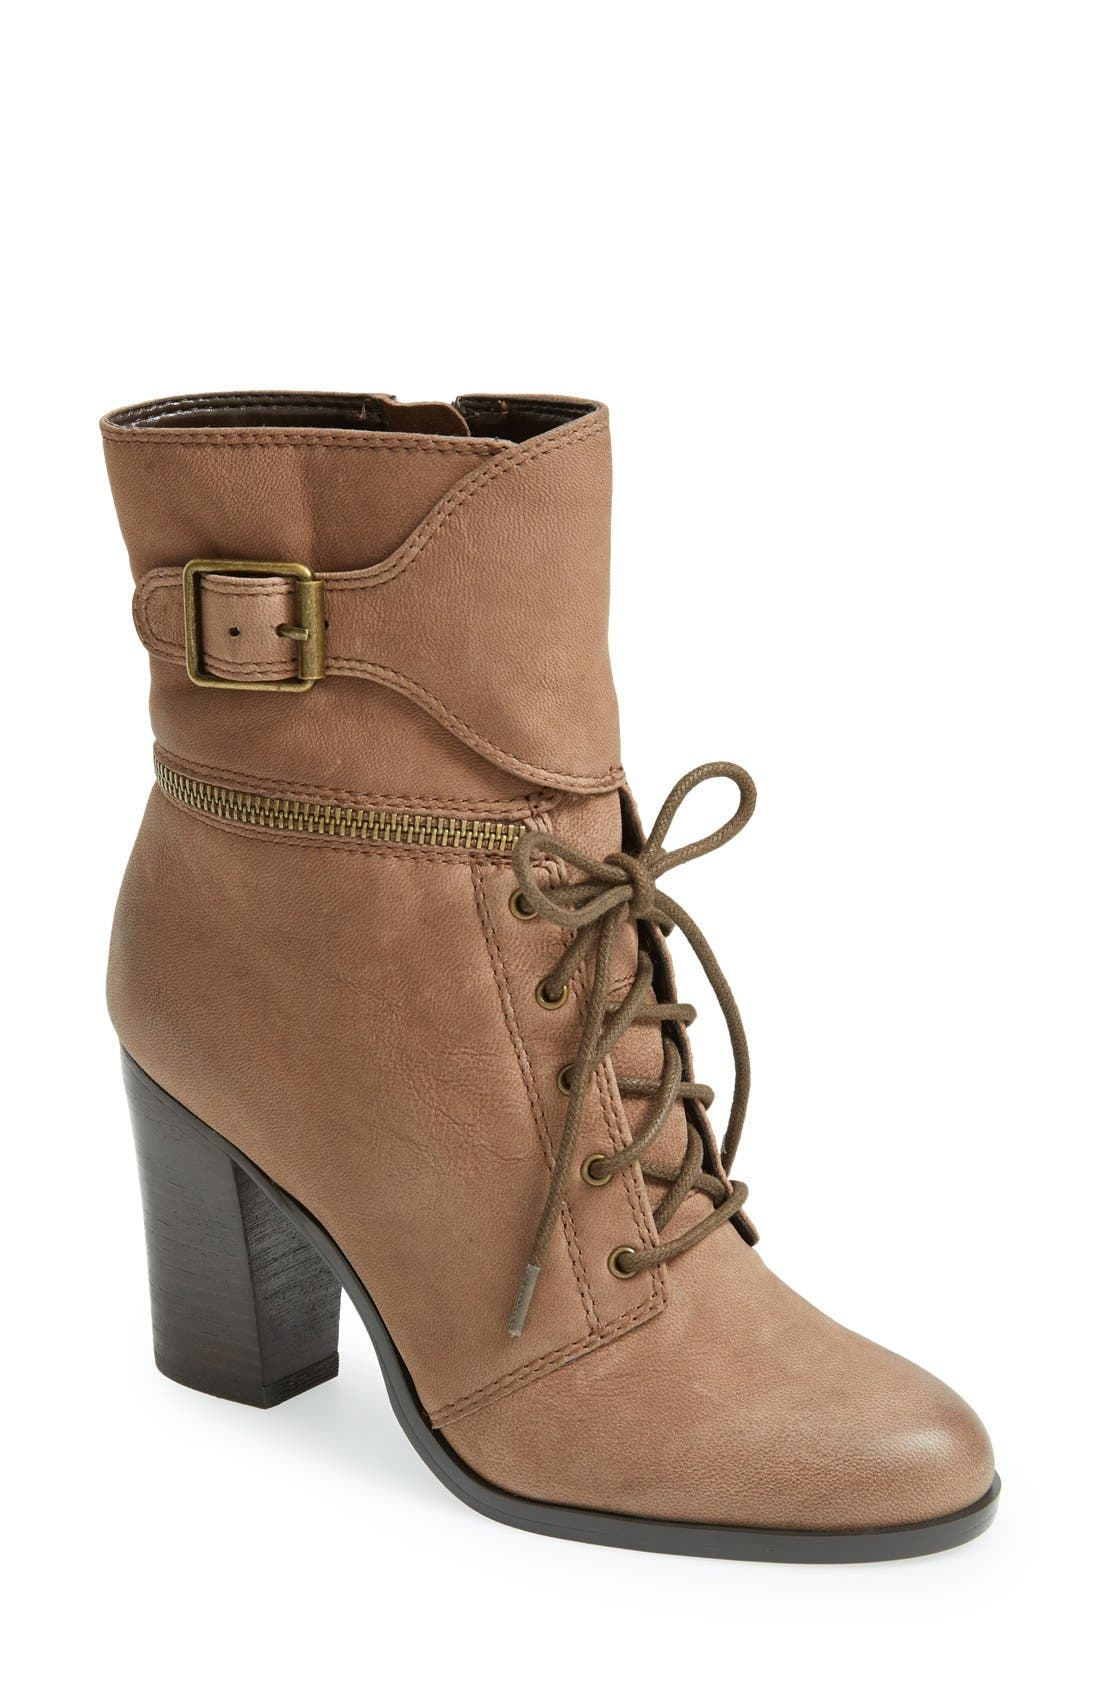 Alternate Image 1 Selected - T Tahari 'Farah' Leather Bootie (Women)